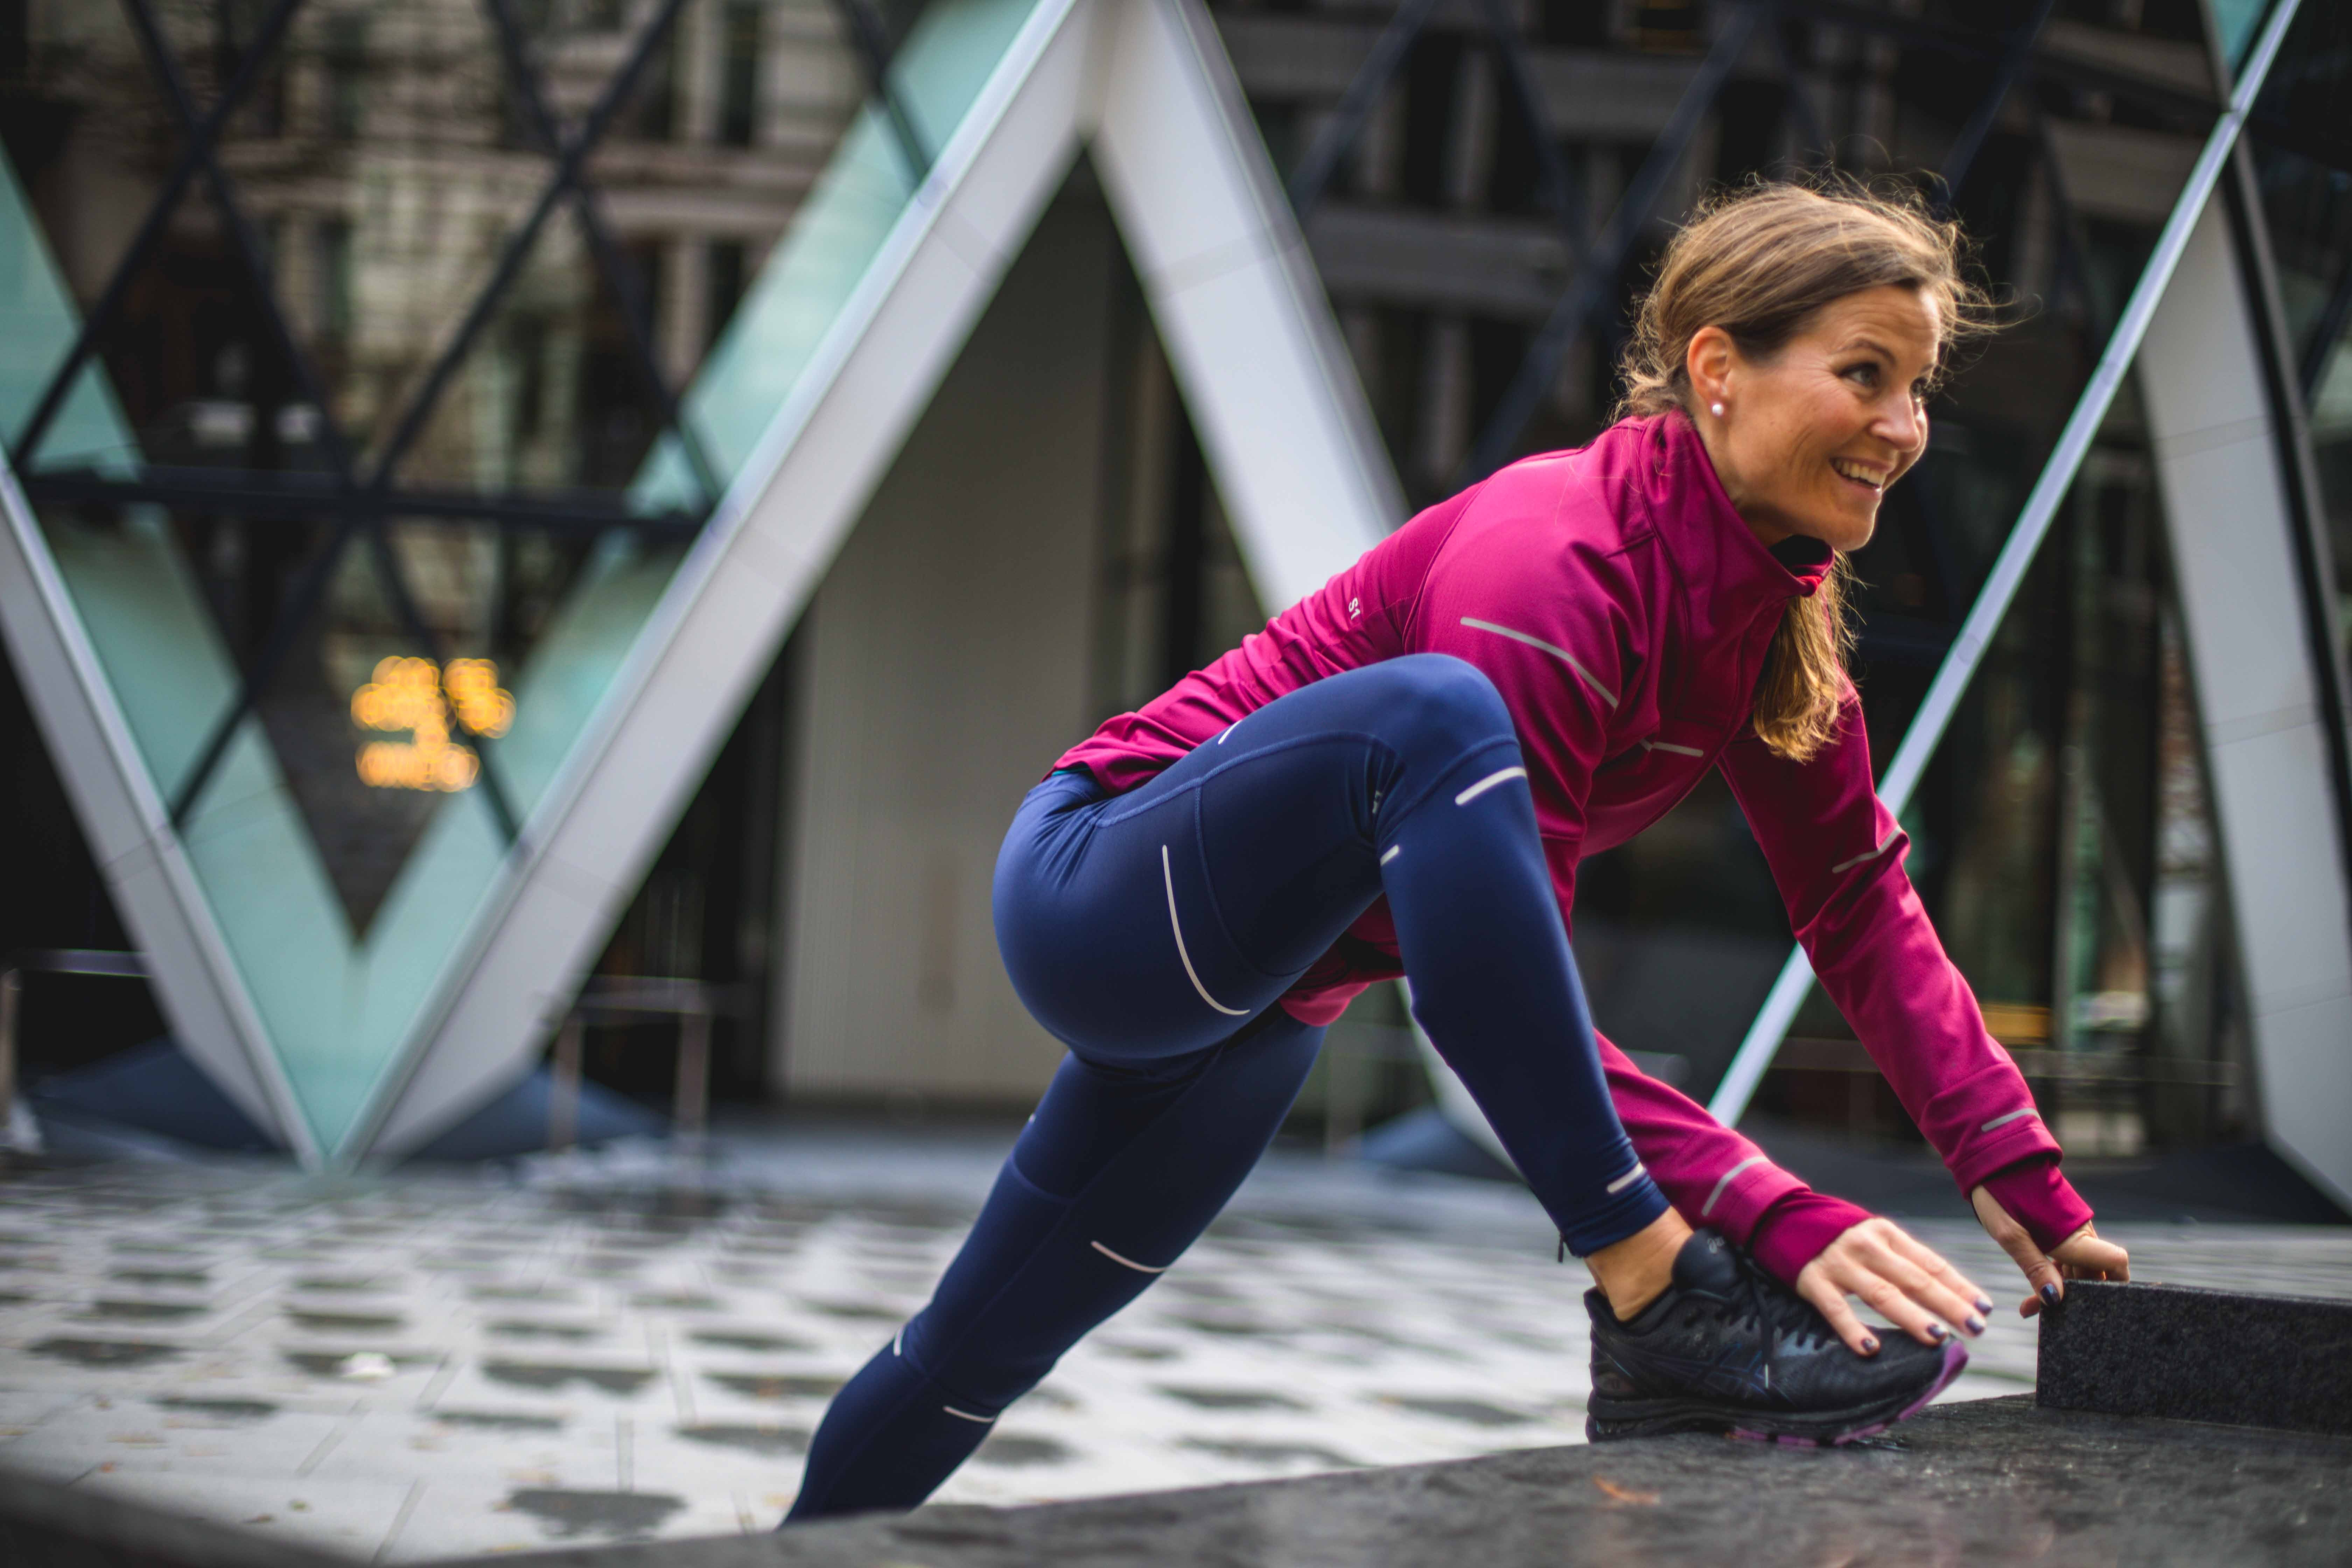 Woman stretching in running clothing